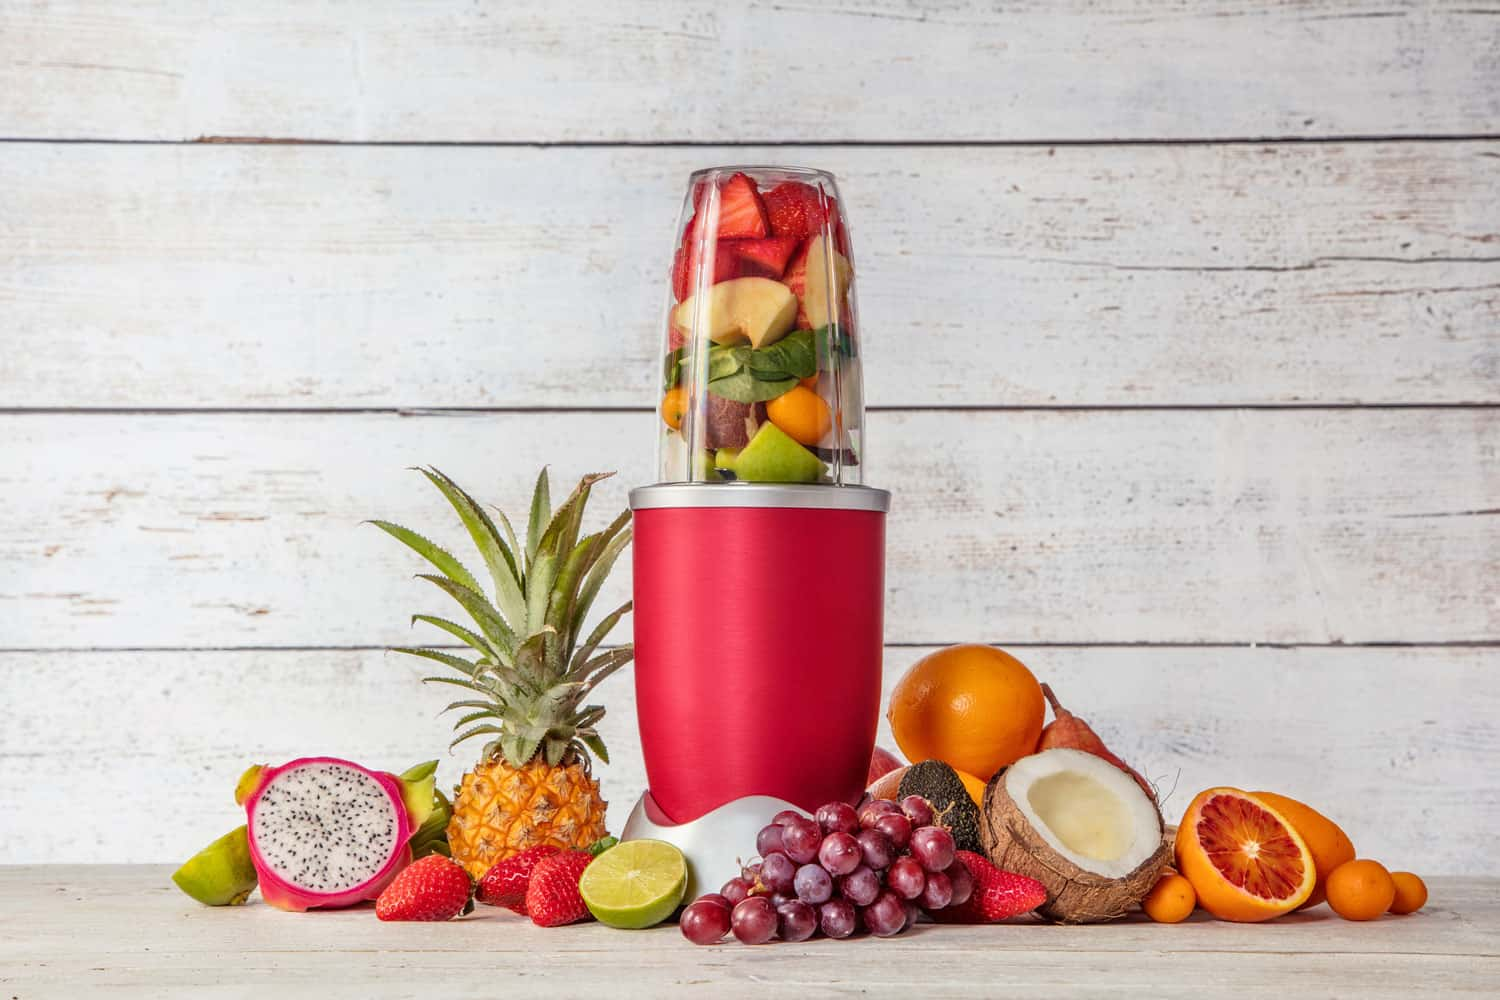 Smoothie maker mixer with pieces of fruit ingredients, placed in wooden interior